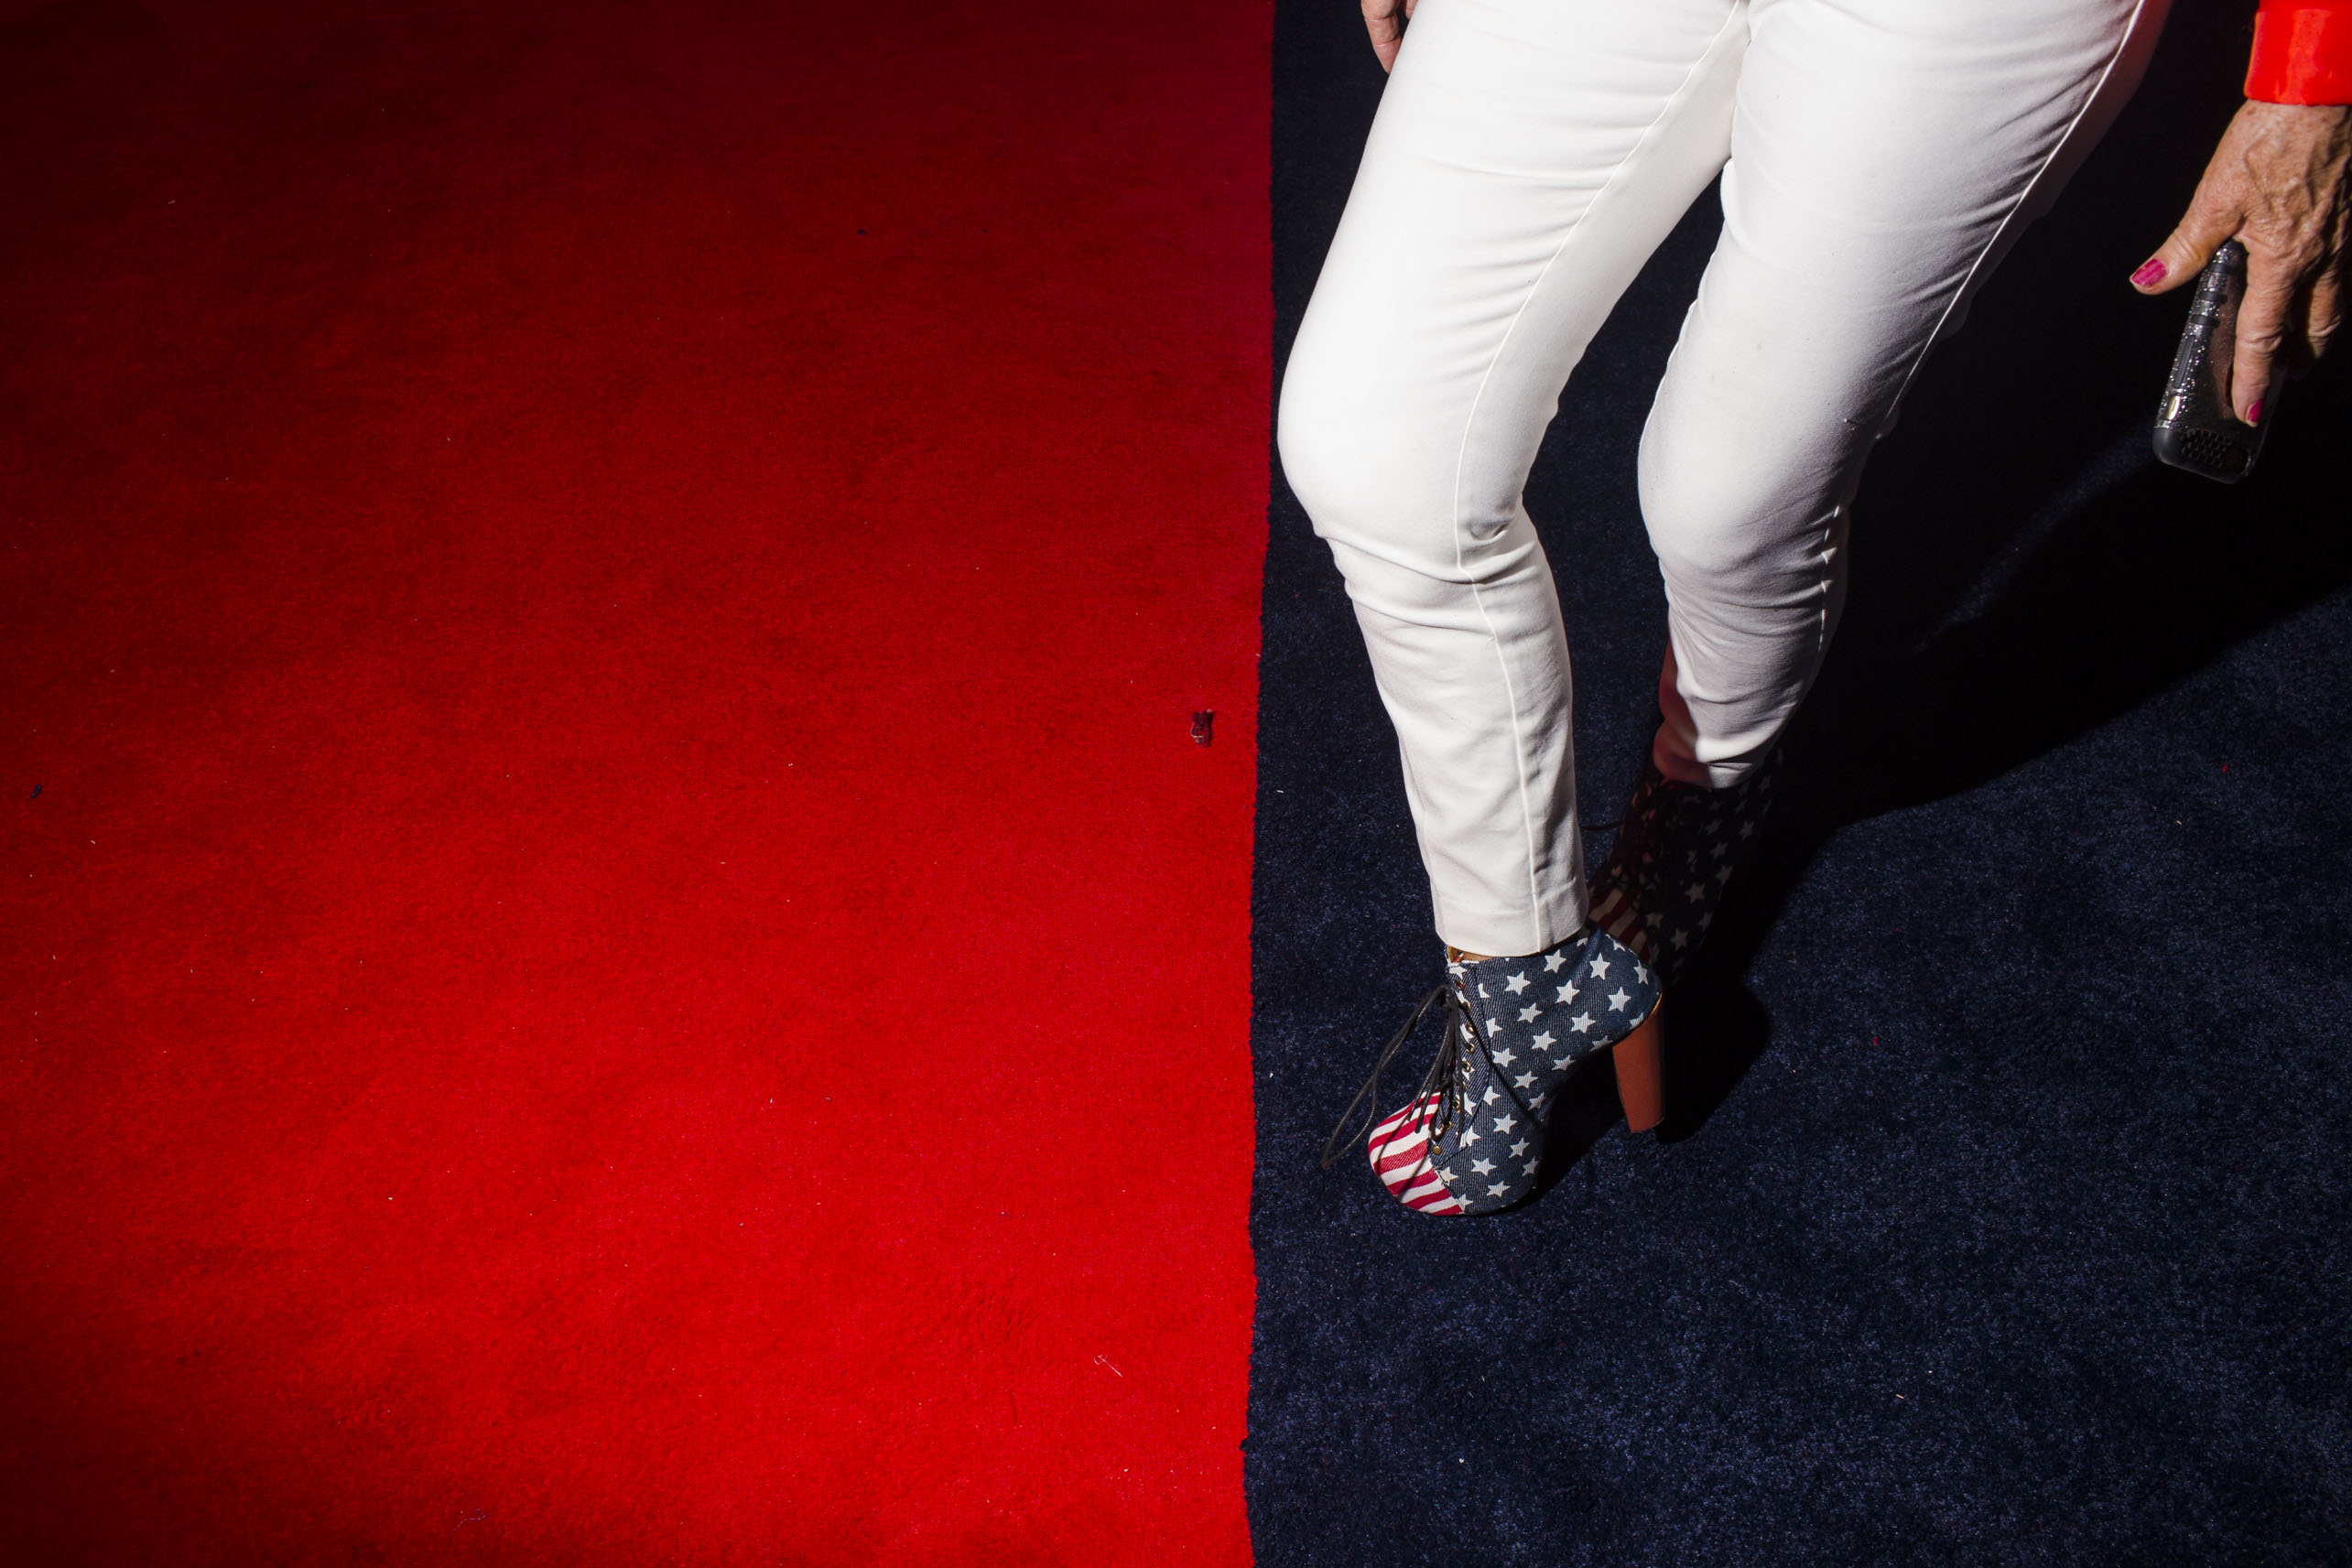 Flag prints made their way from head to toe at the 2016 Republican National Convention on Monday, July 18, 2016, in Cleveland.